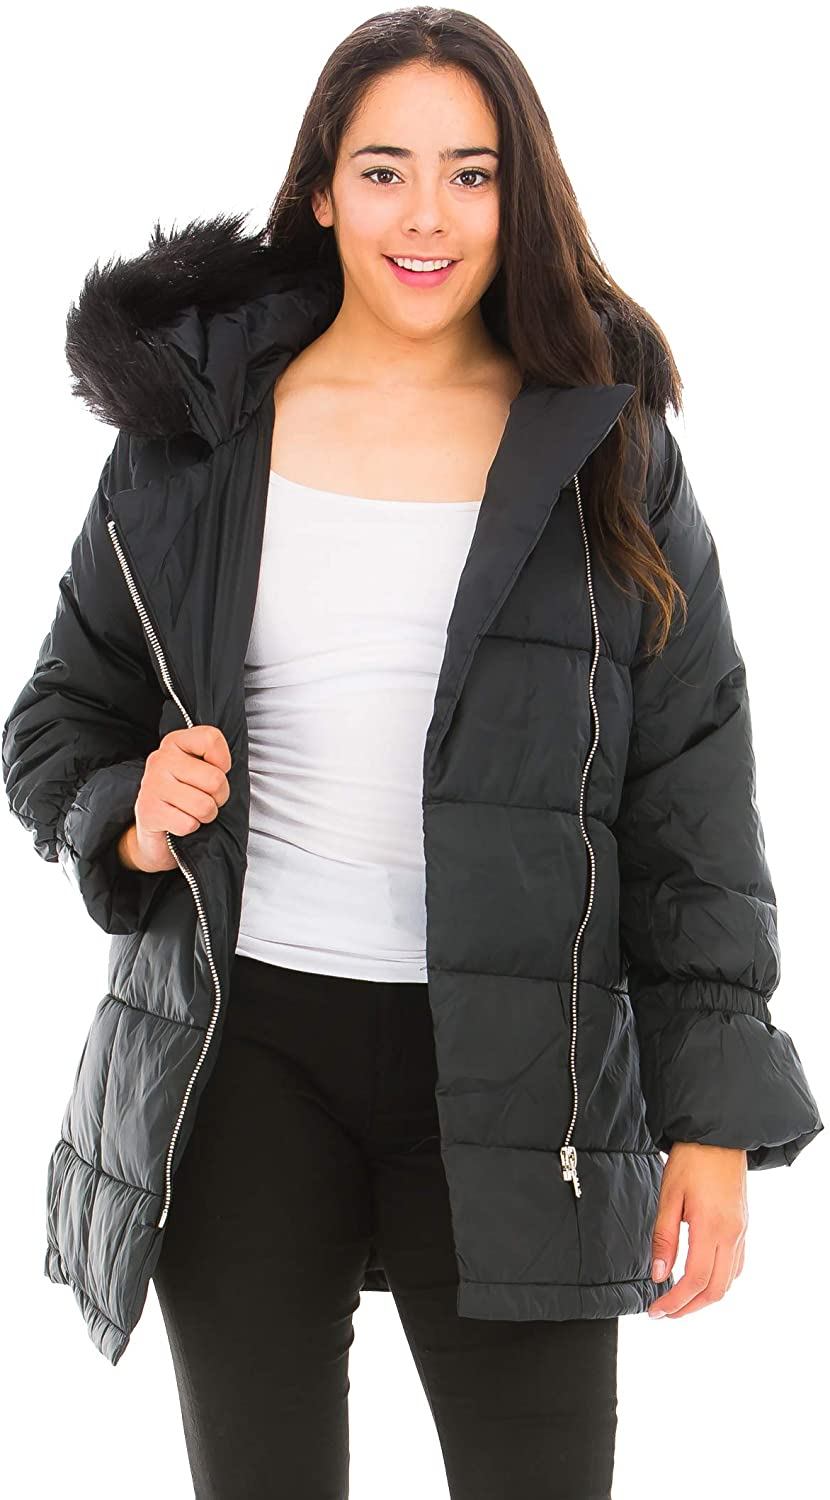 PIXNET Women's Winter Hooded Down Puffer Jacket Coats Thickened Parkas Hip-Length with Faux Fur Trim Hood